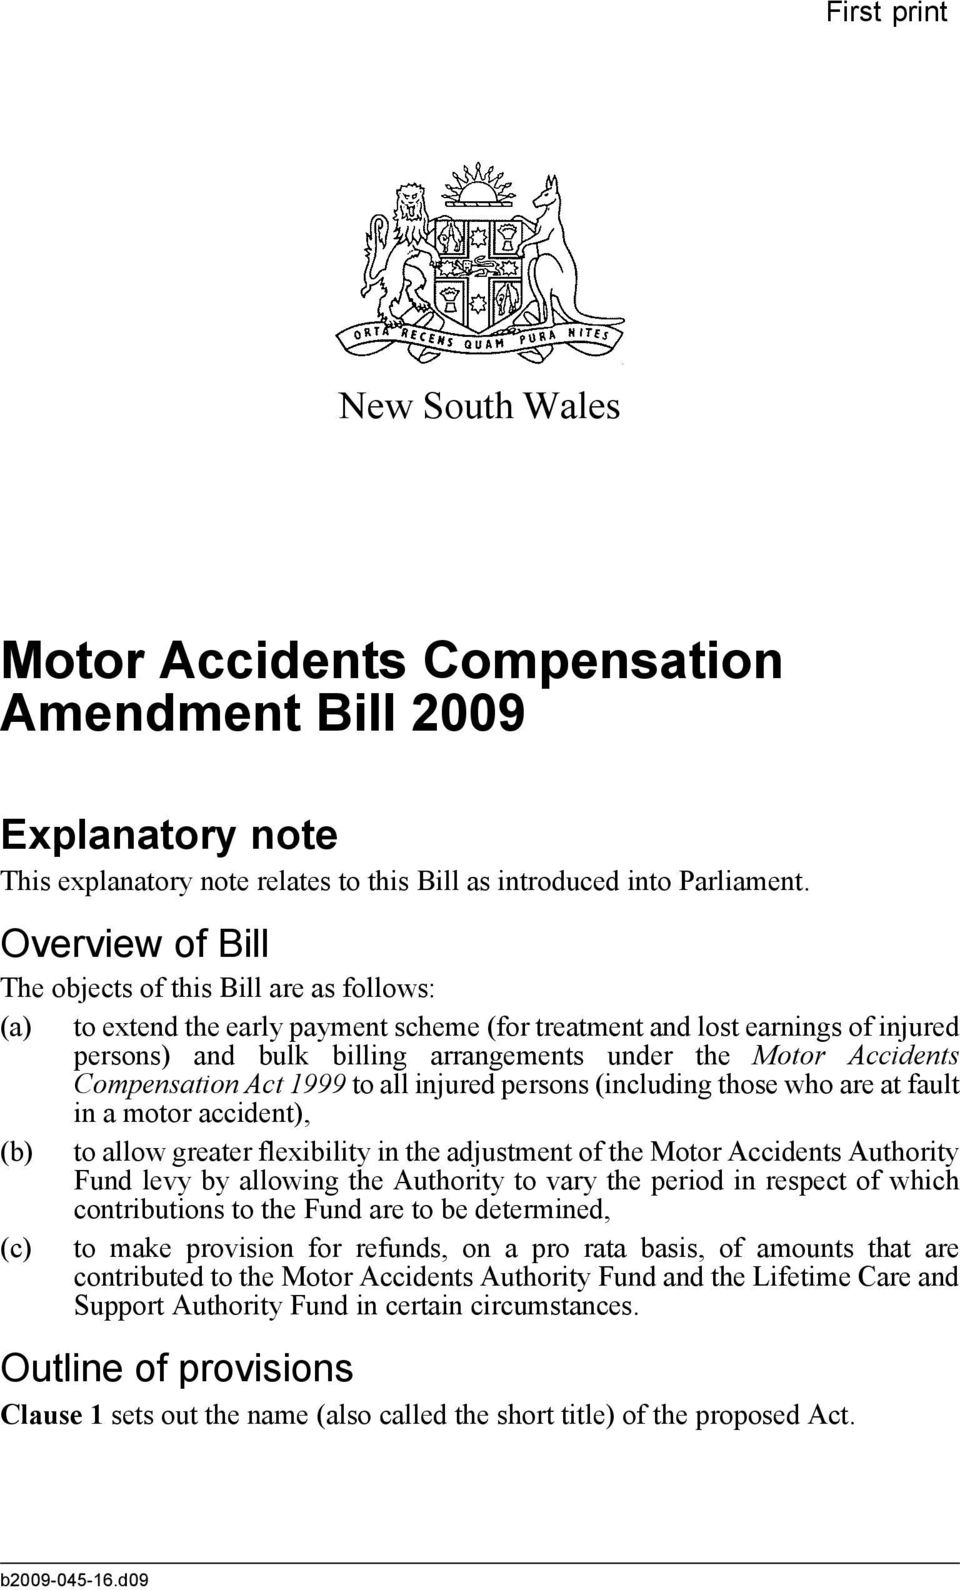 Accidents Compensation Act 999 to all injured persons (including those who are at fault in a motor accident), (b) to allow greater flexibility in the adjustment of the Motor Accidents Authority Fund